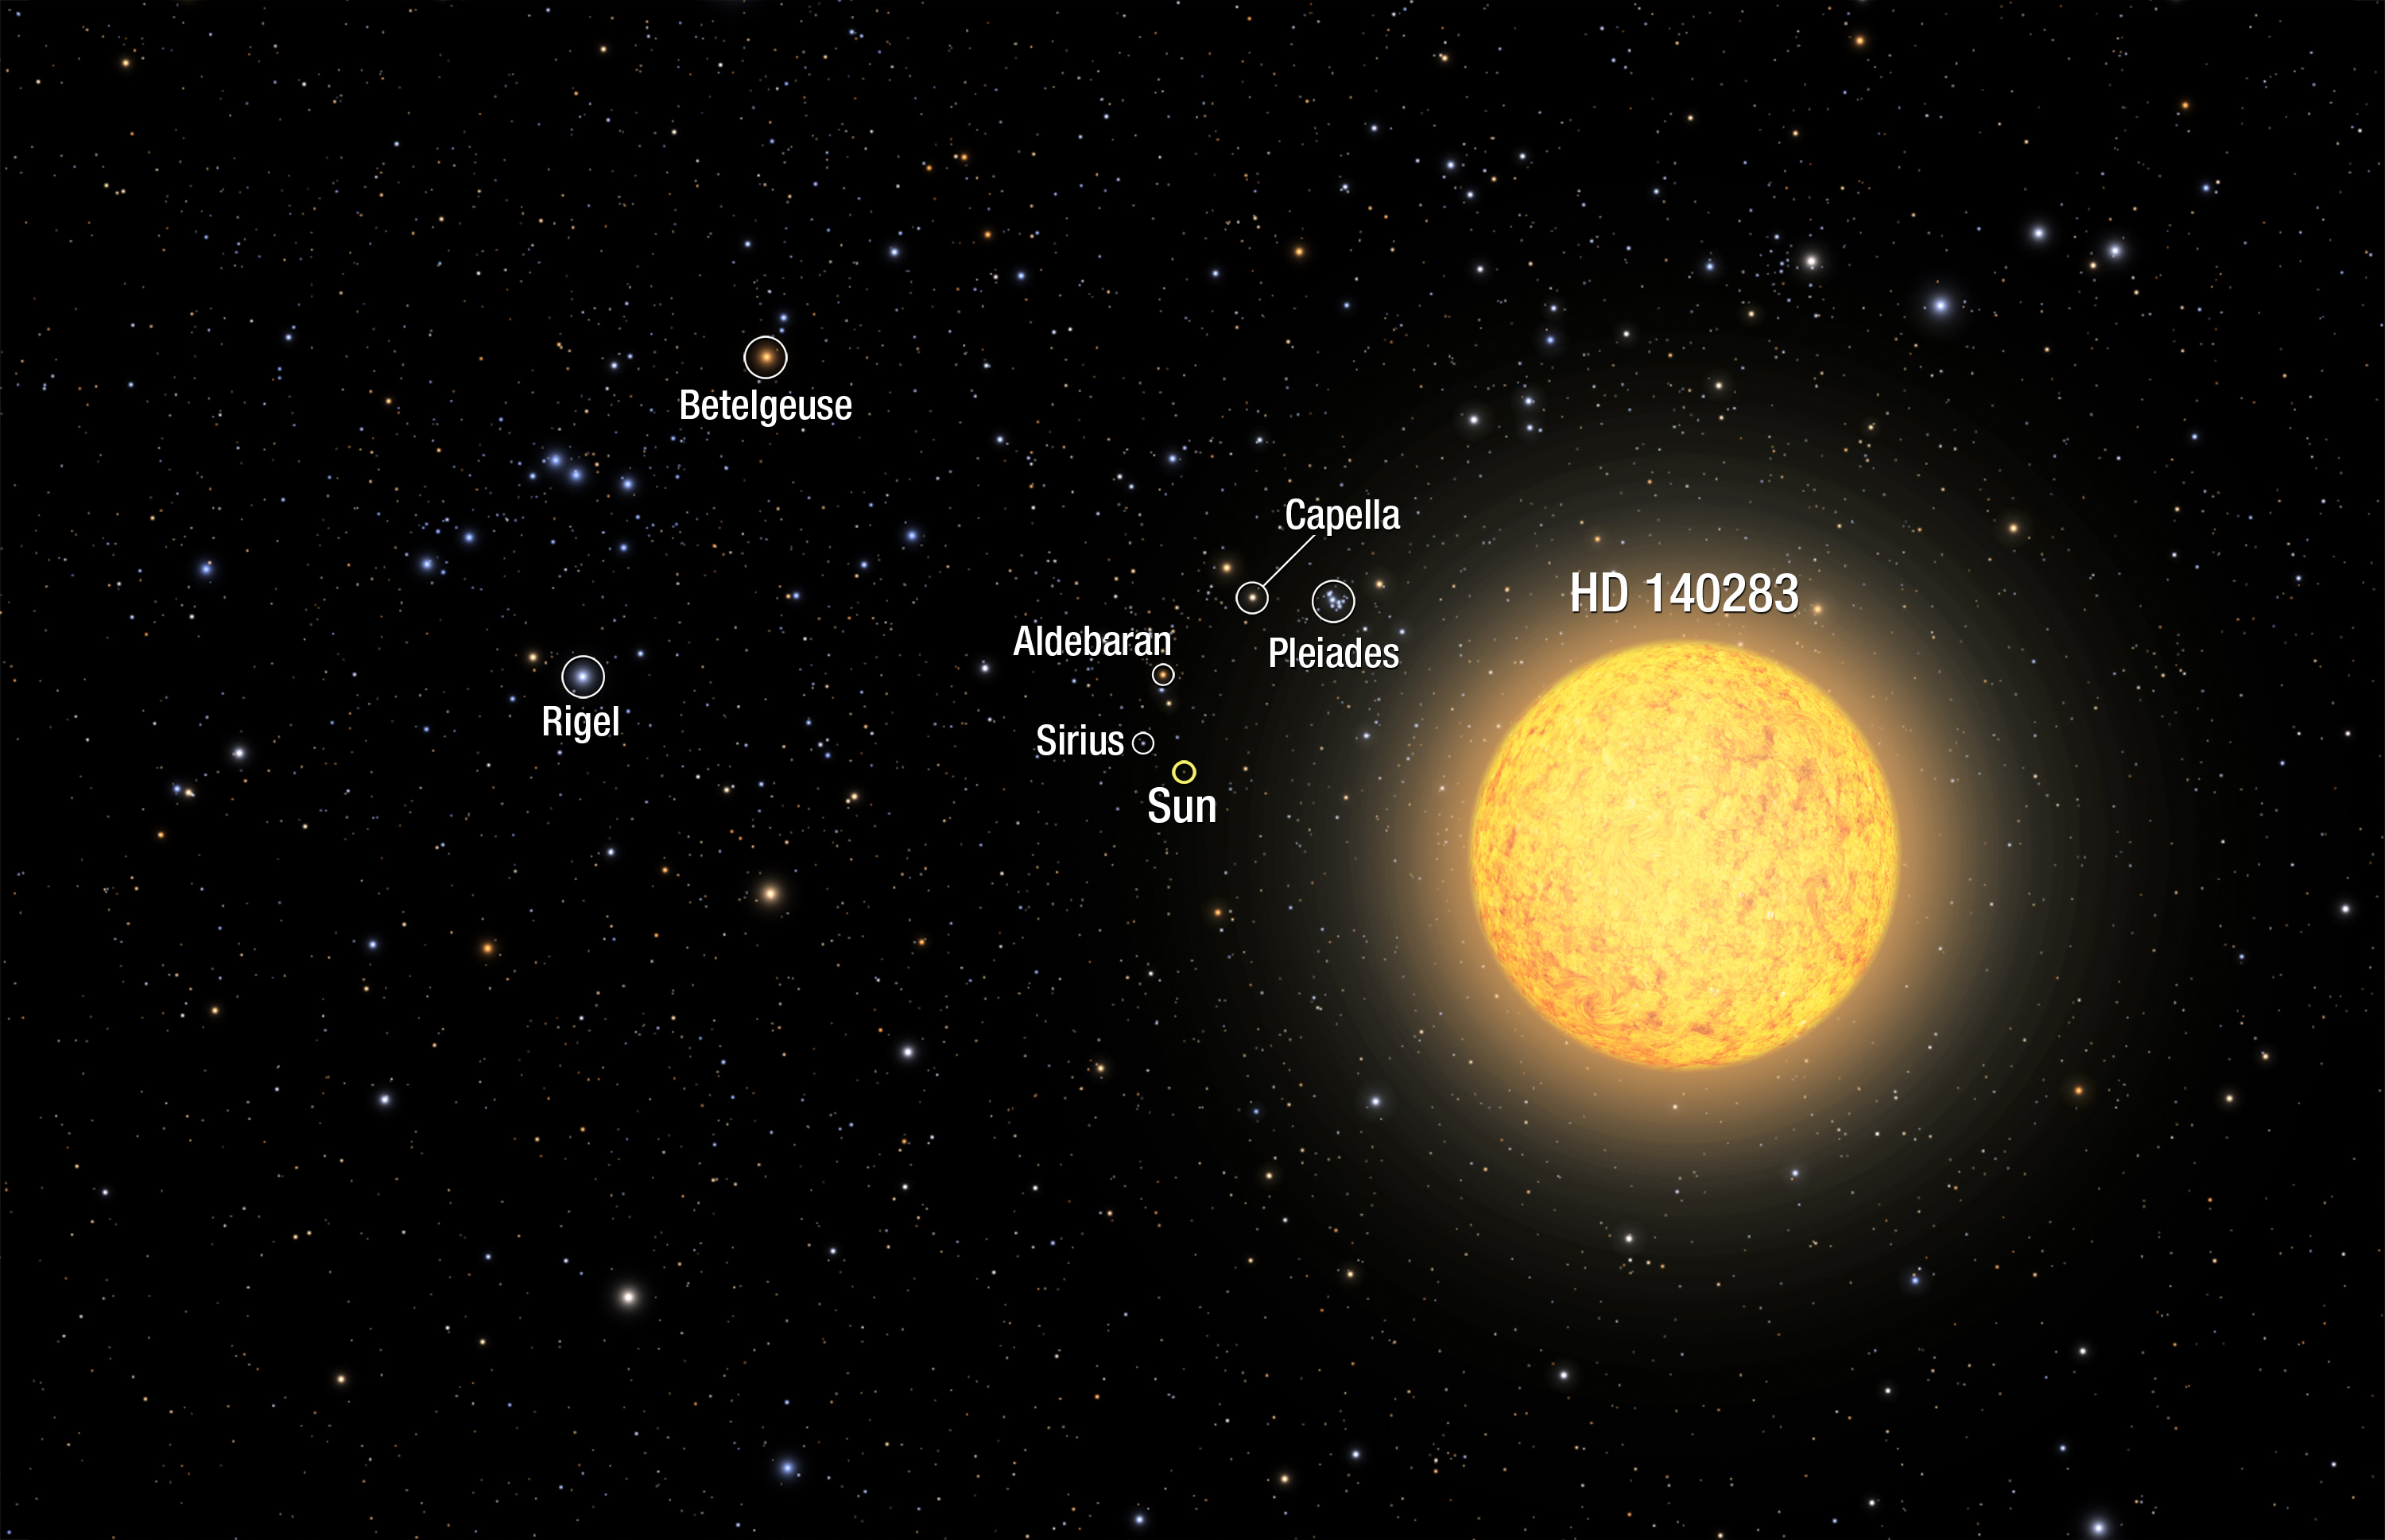 Oldest Known Star HD 140283 & Neighbors